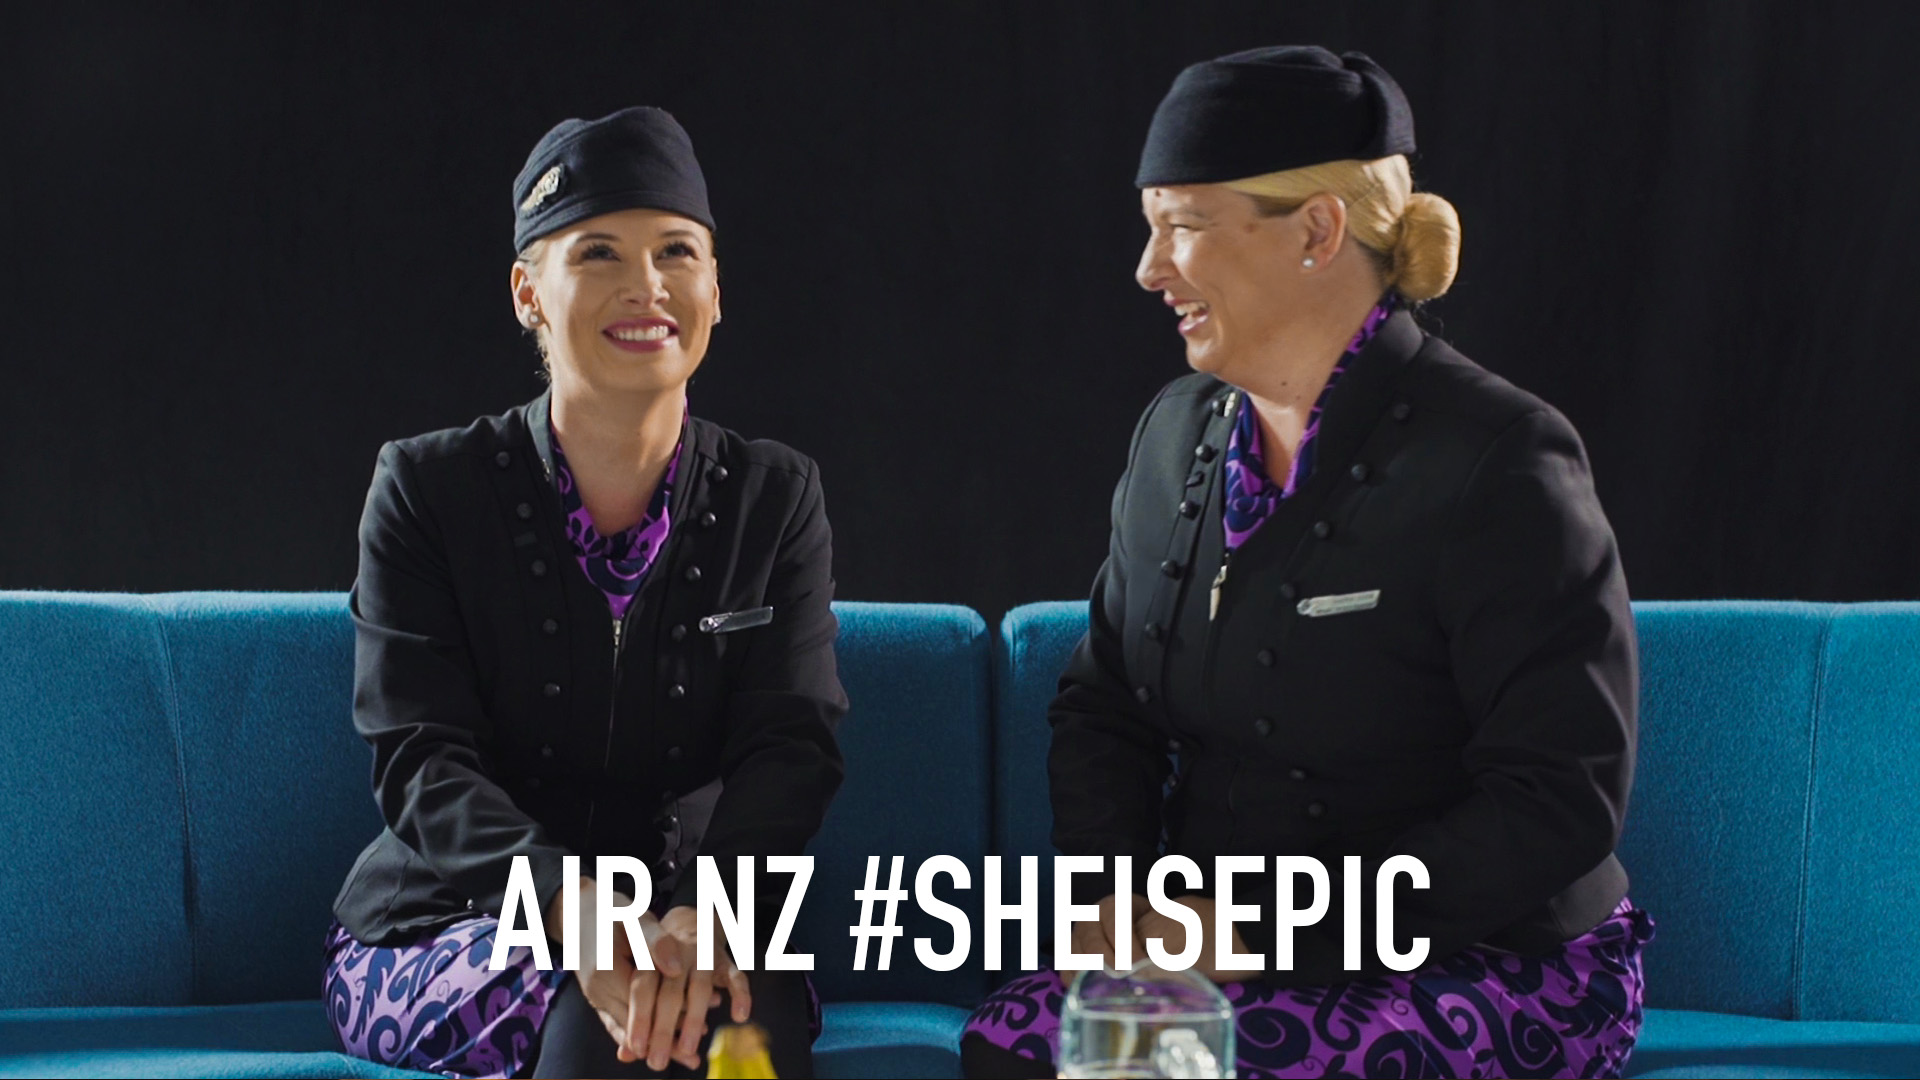 Air NZ International Womens Day